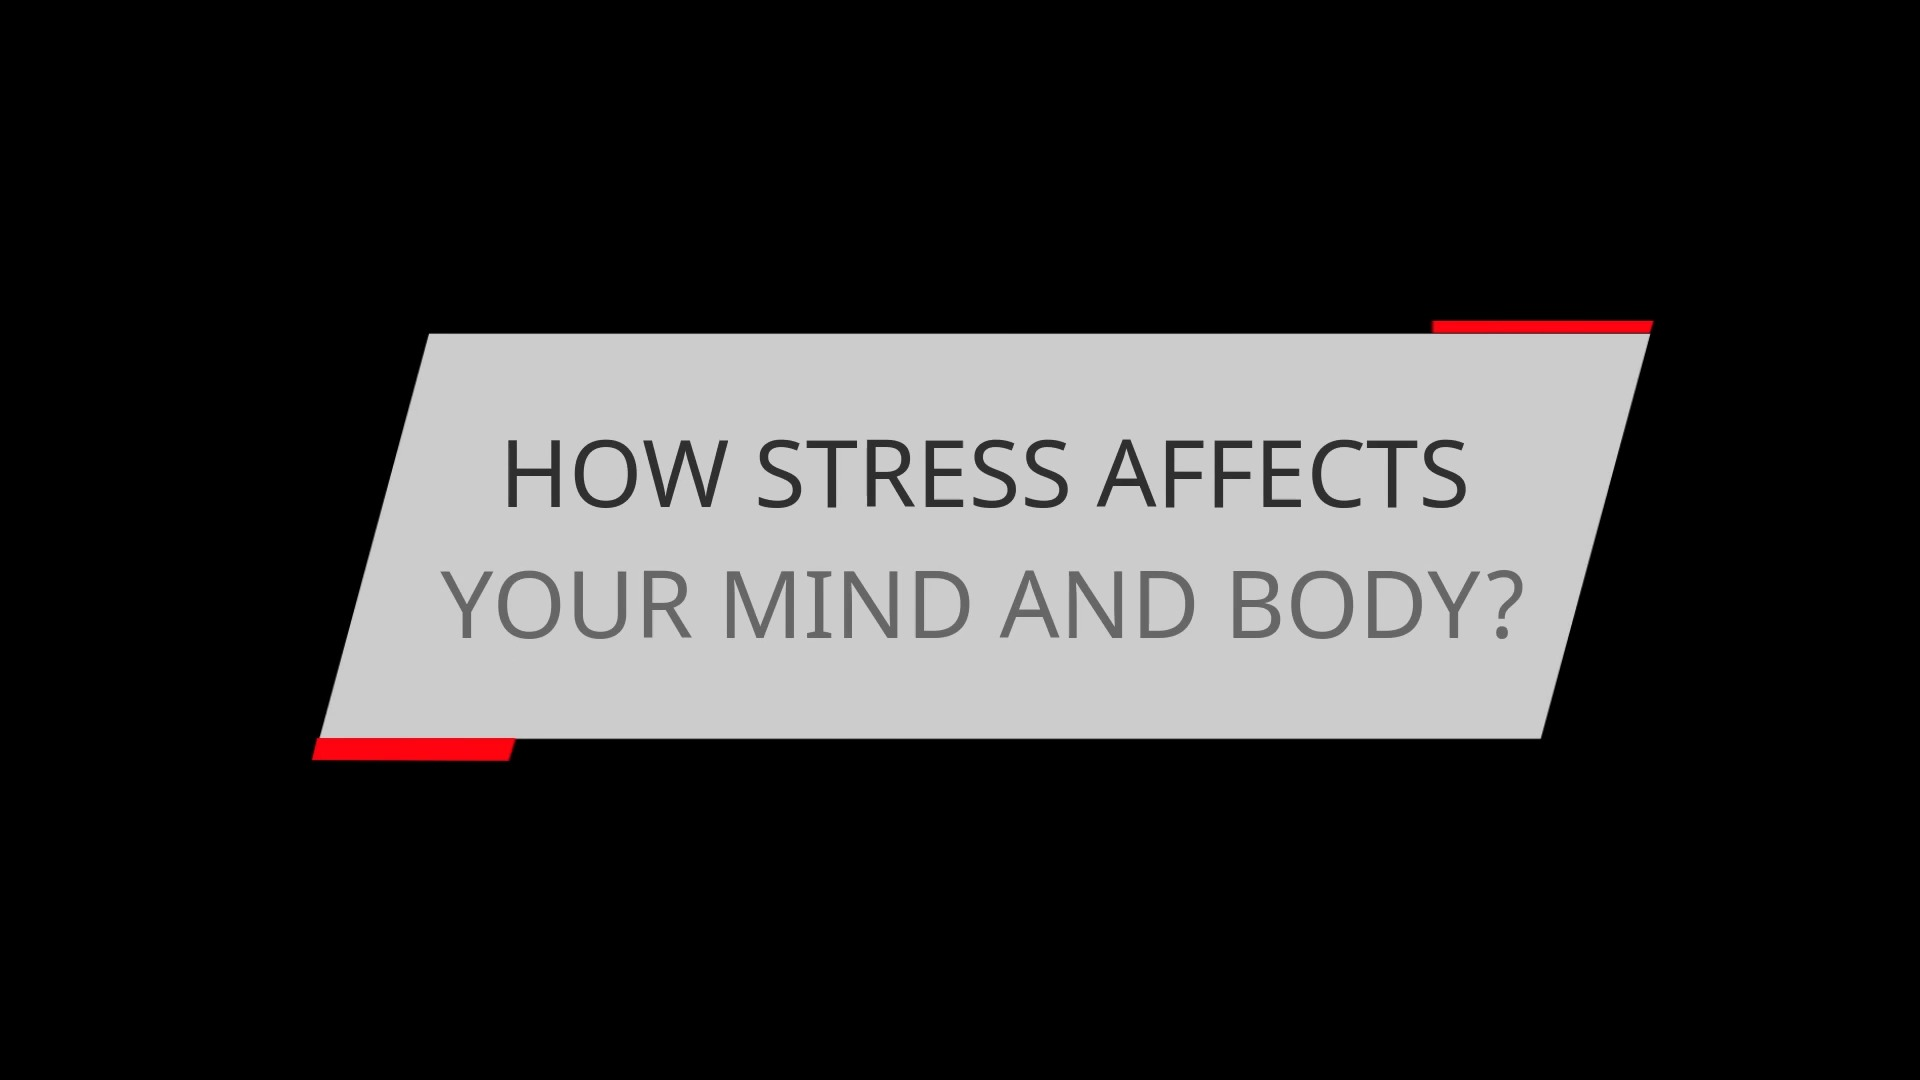 HOW STRESS AFFECTS YOUR MIND AND BODY